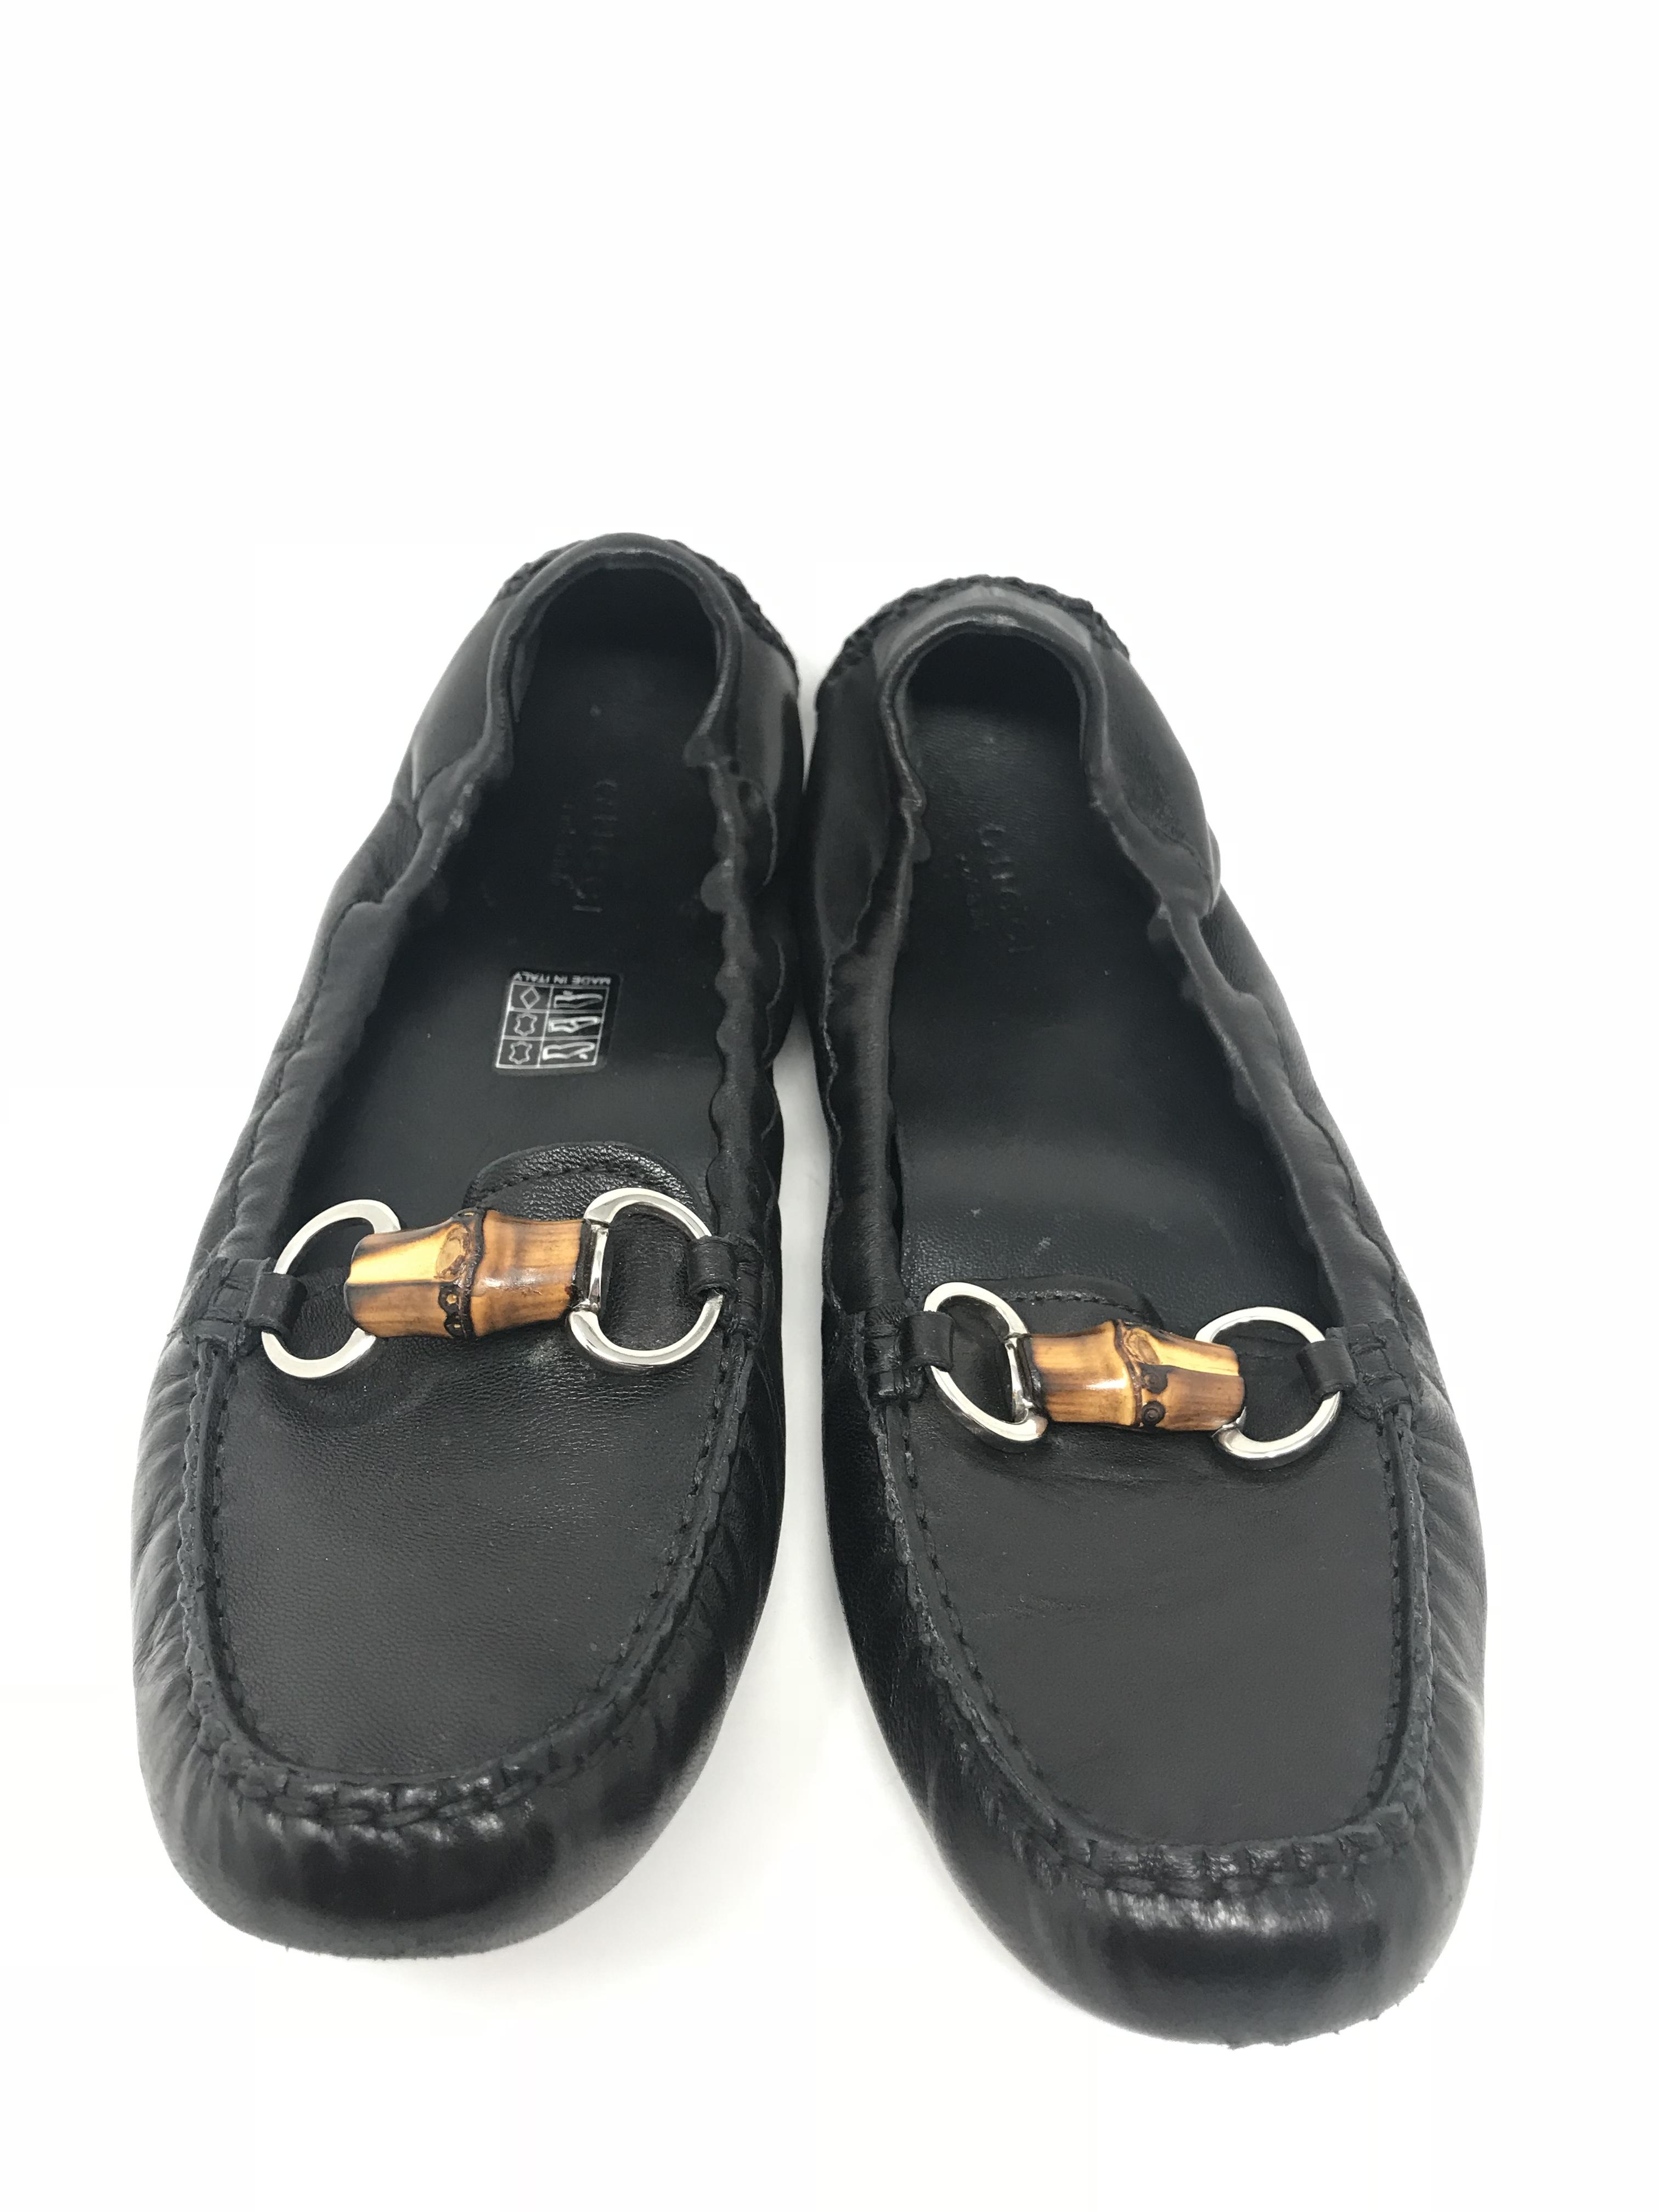 Gucci Shoes Price: $236.99